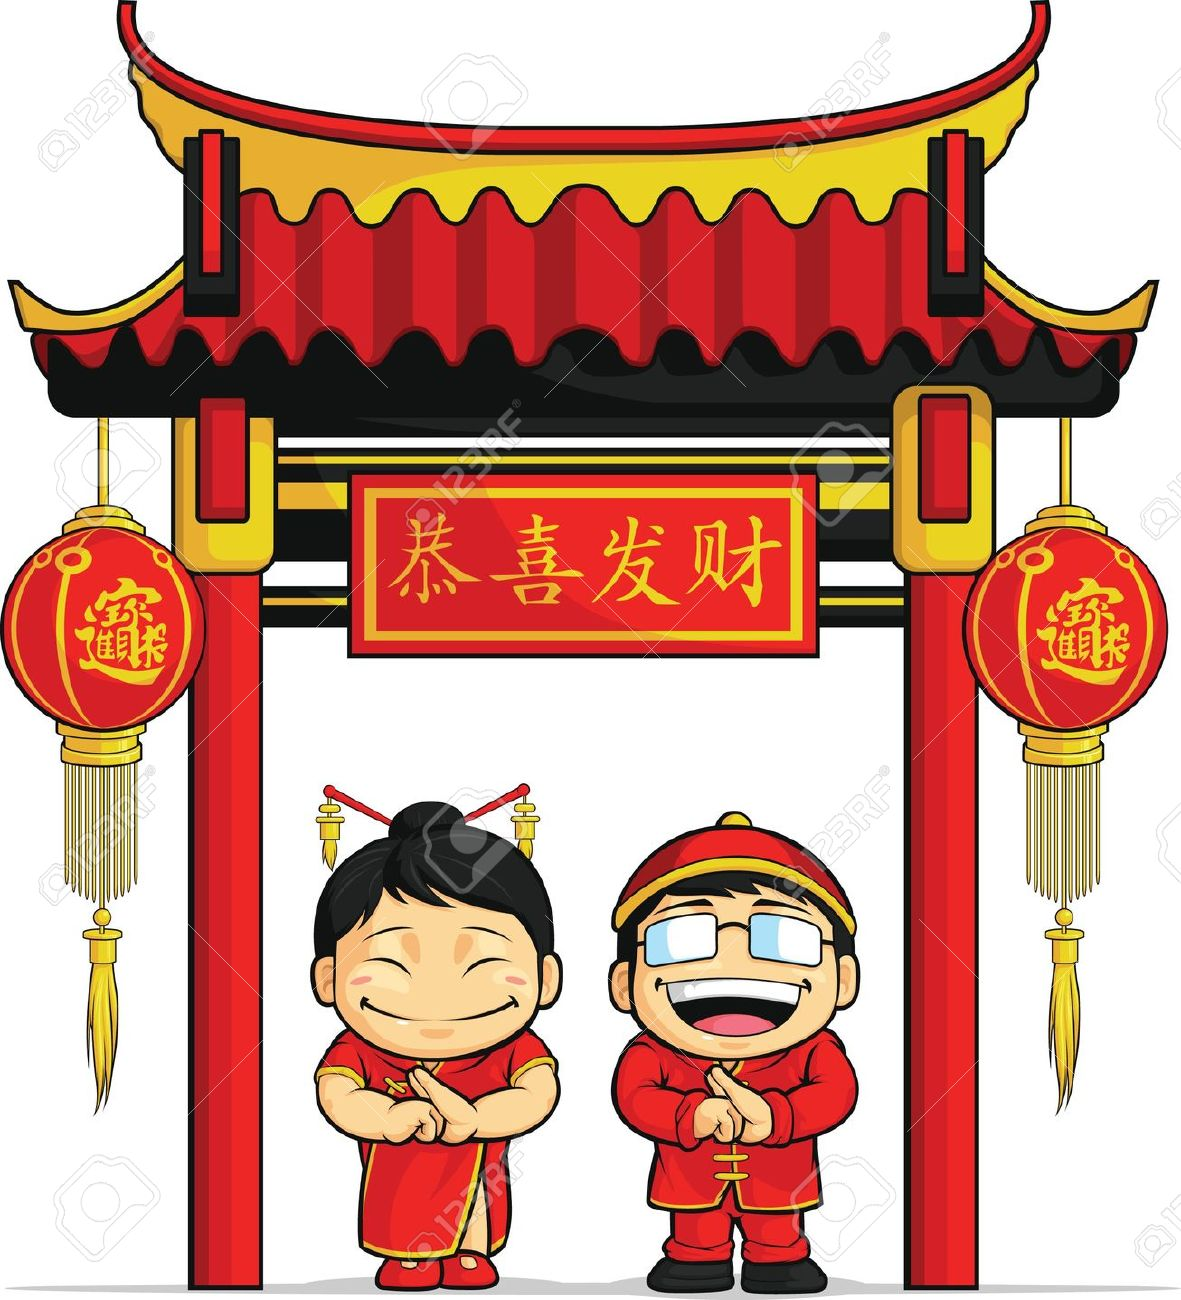 Free chinese new year clipart images.